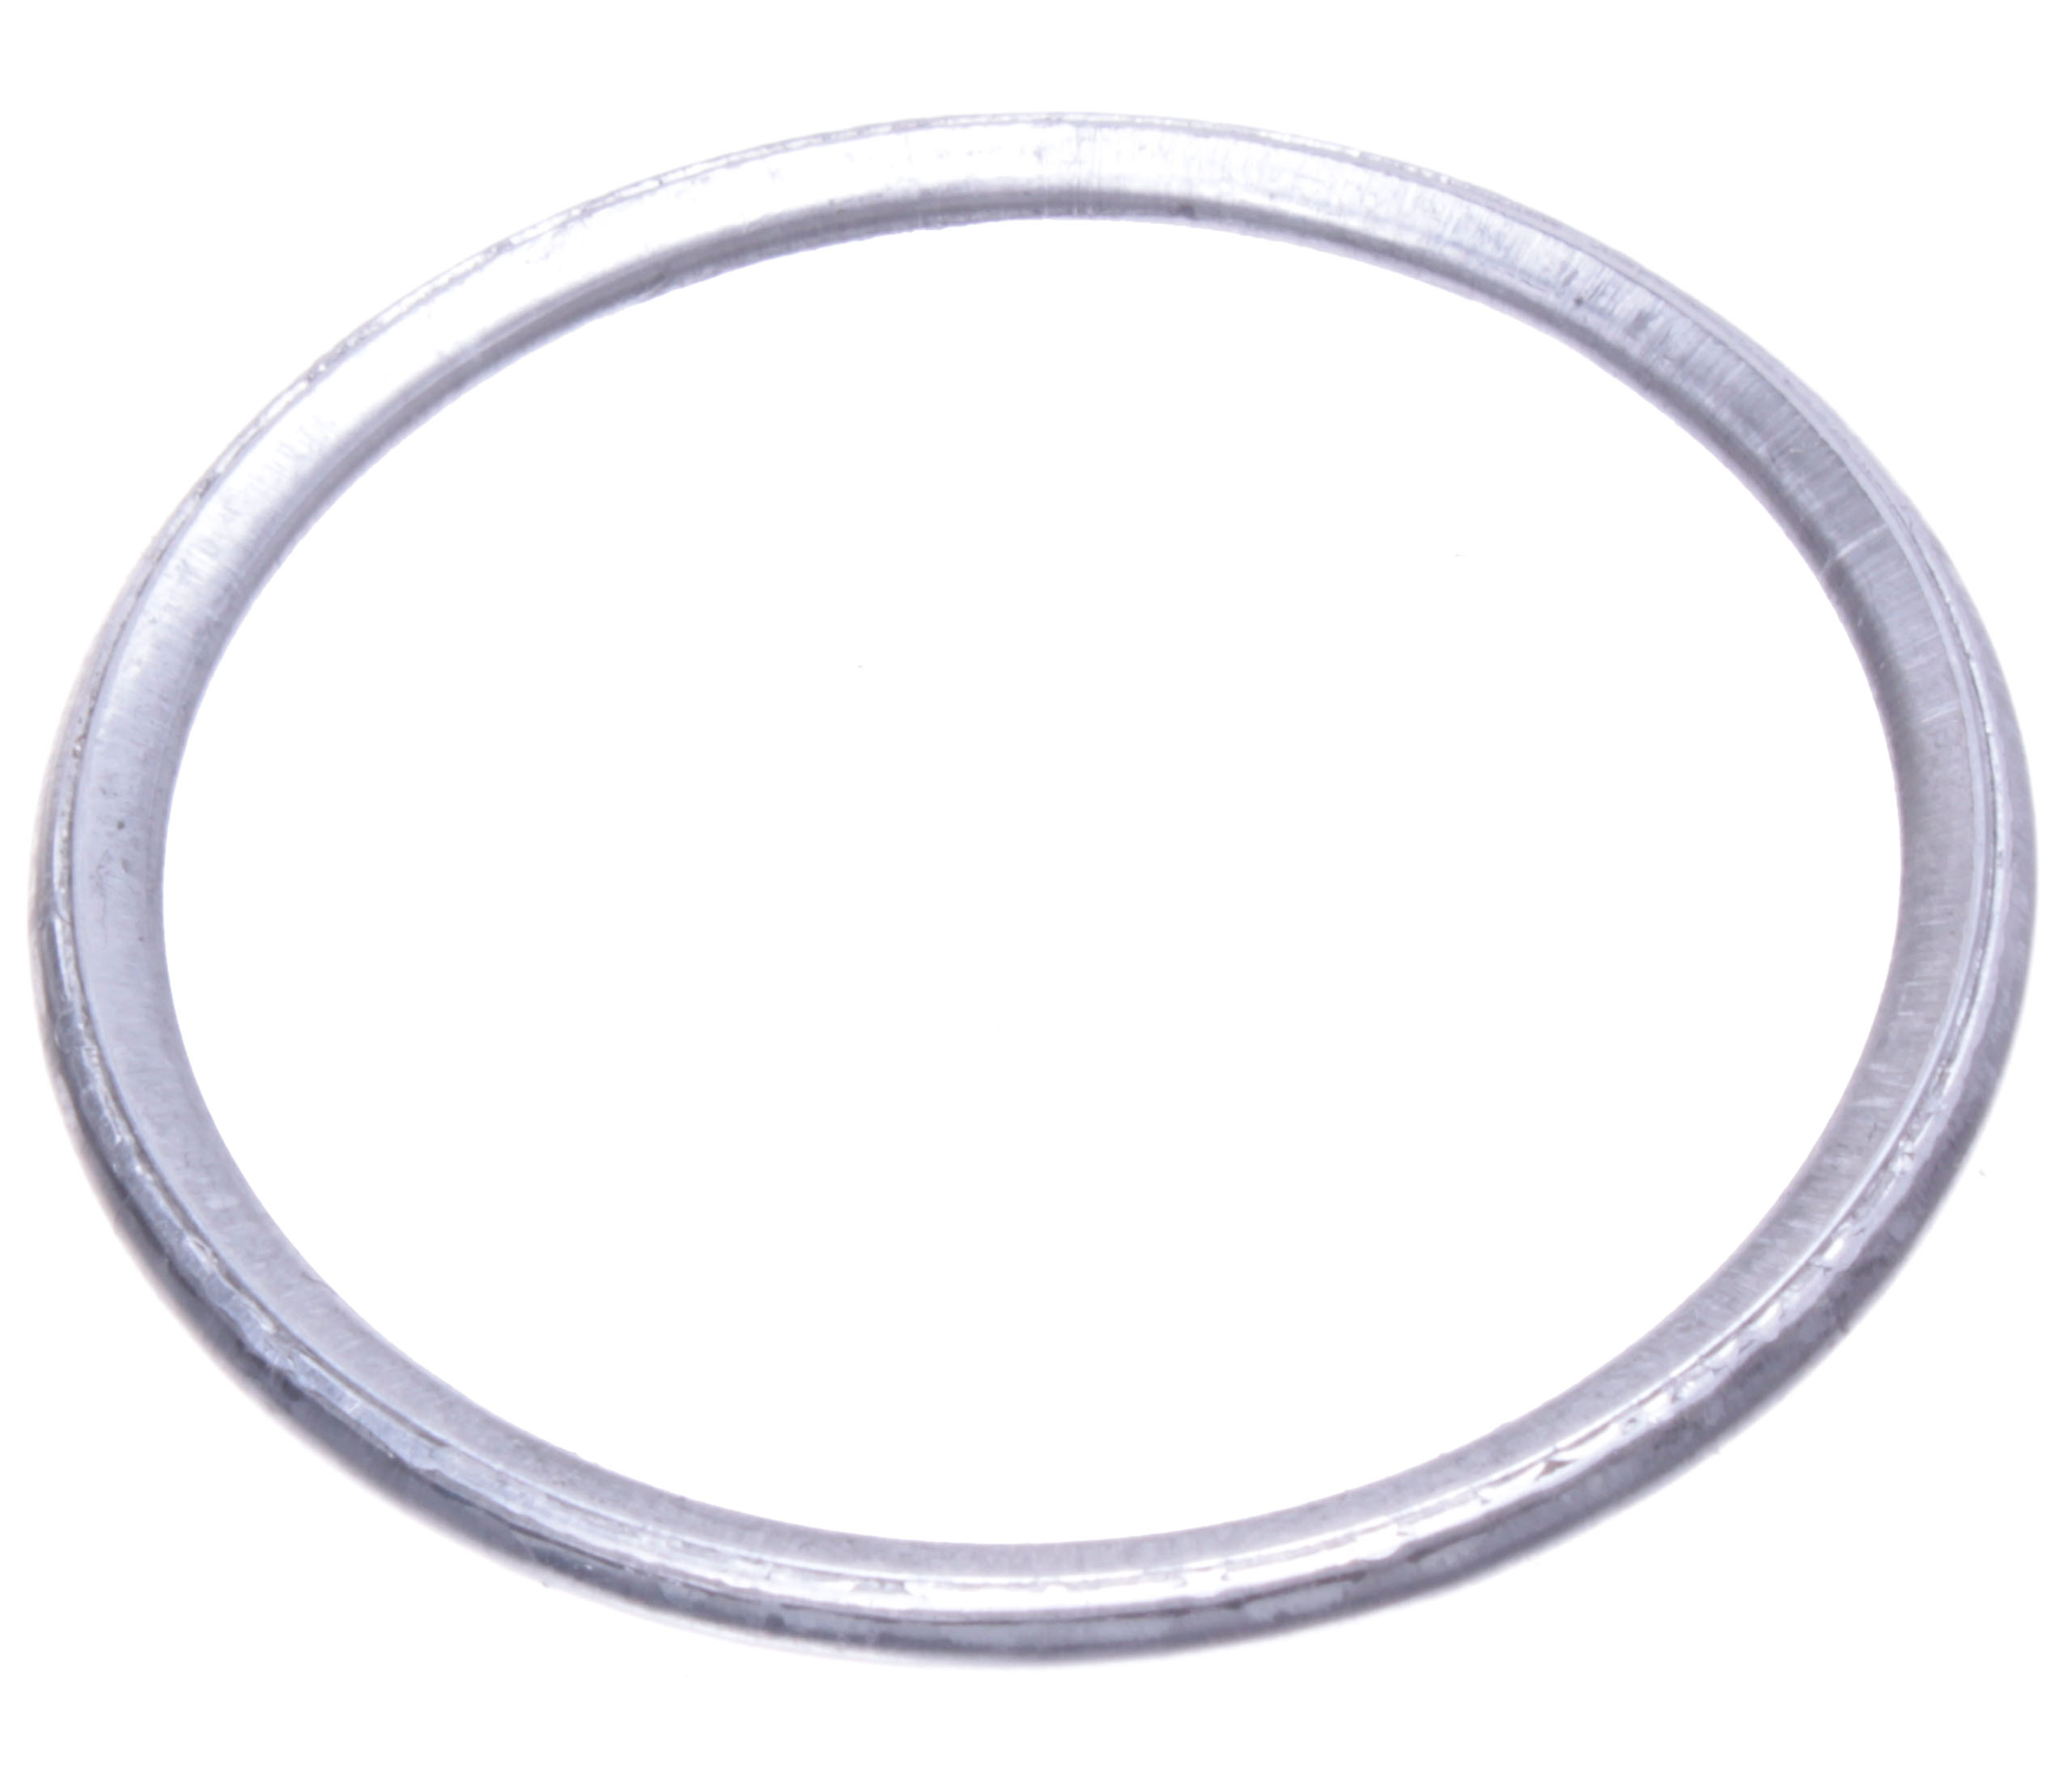 SIMSON S51 SR50 GASKET THE WHEEL EXHAUST ALUMINUM.